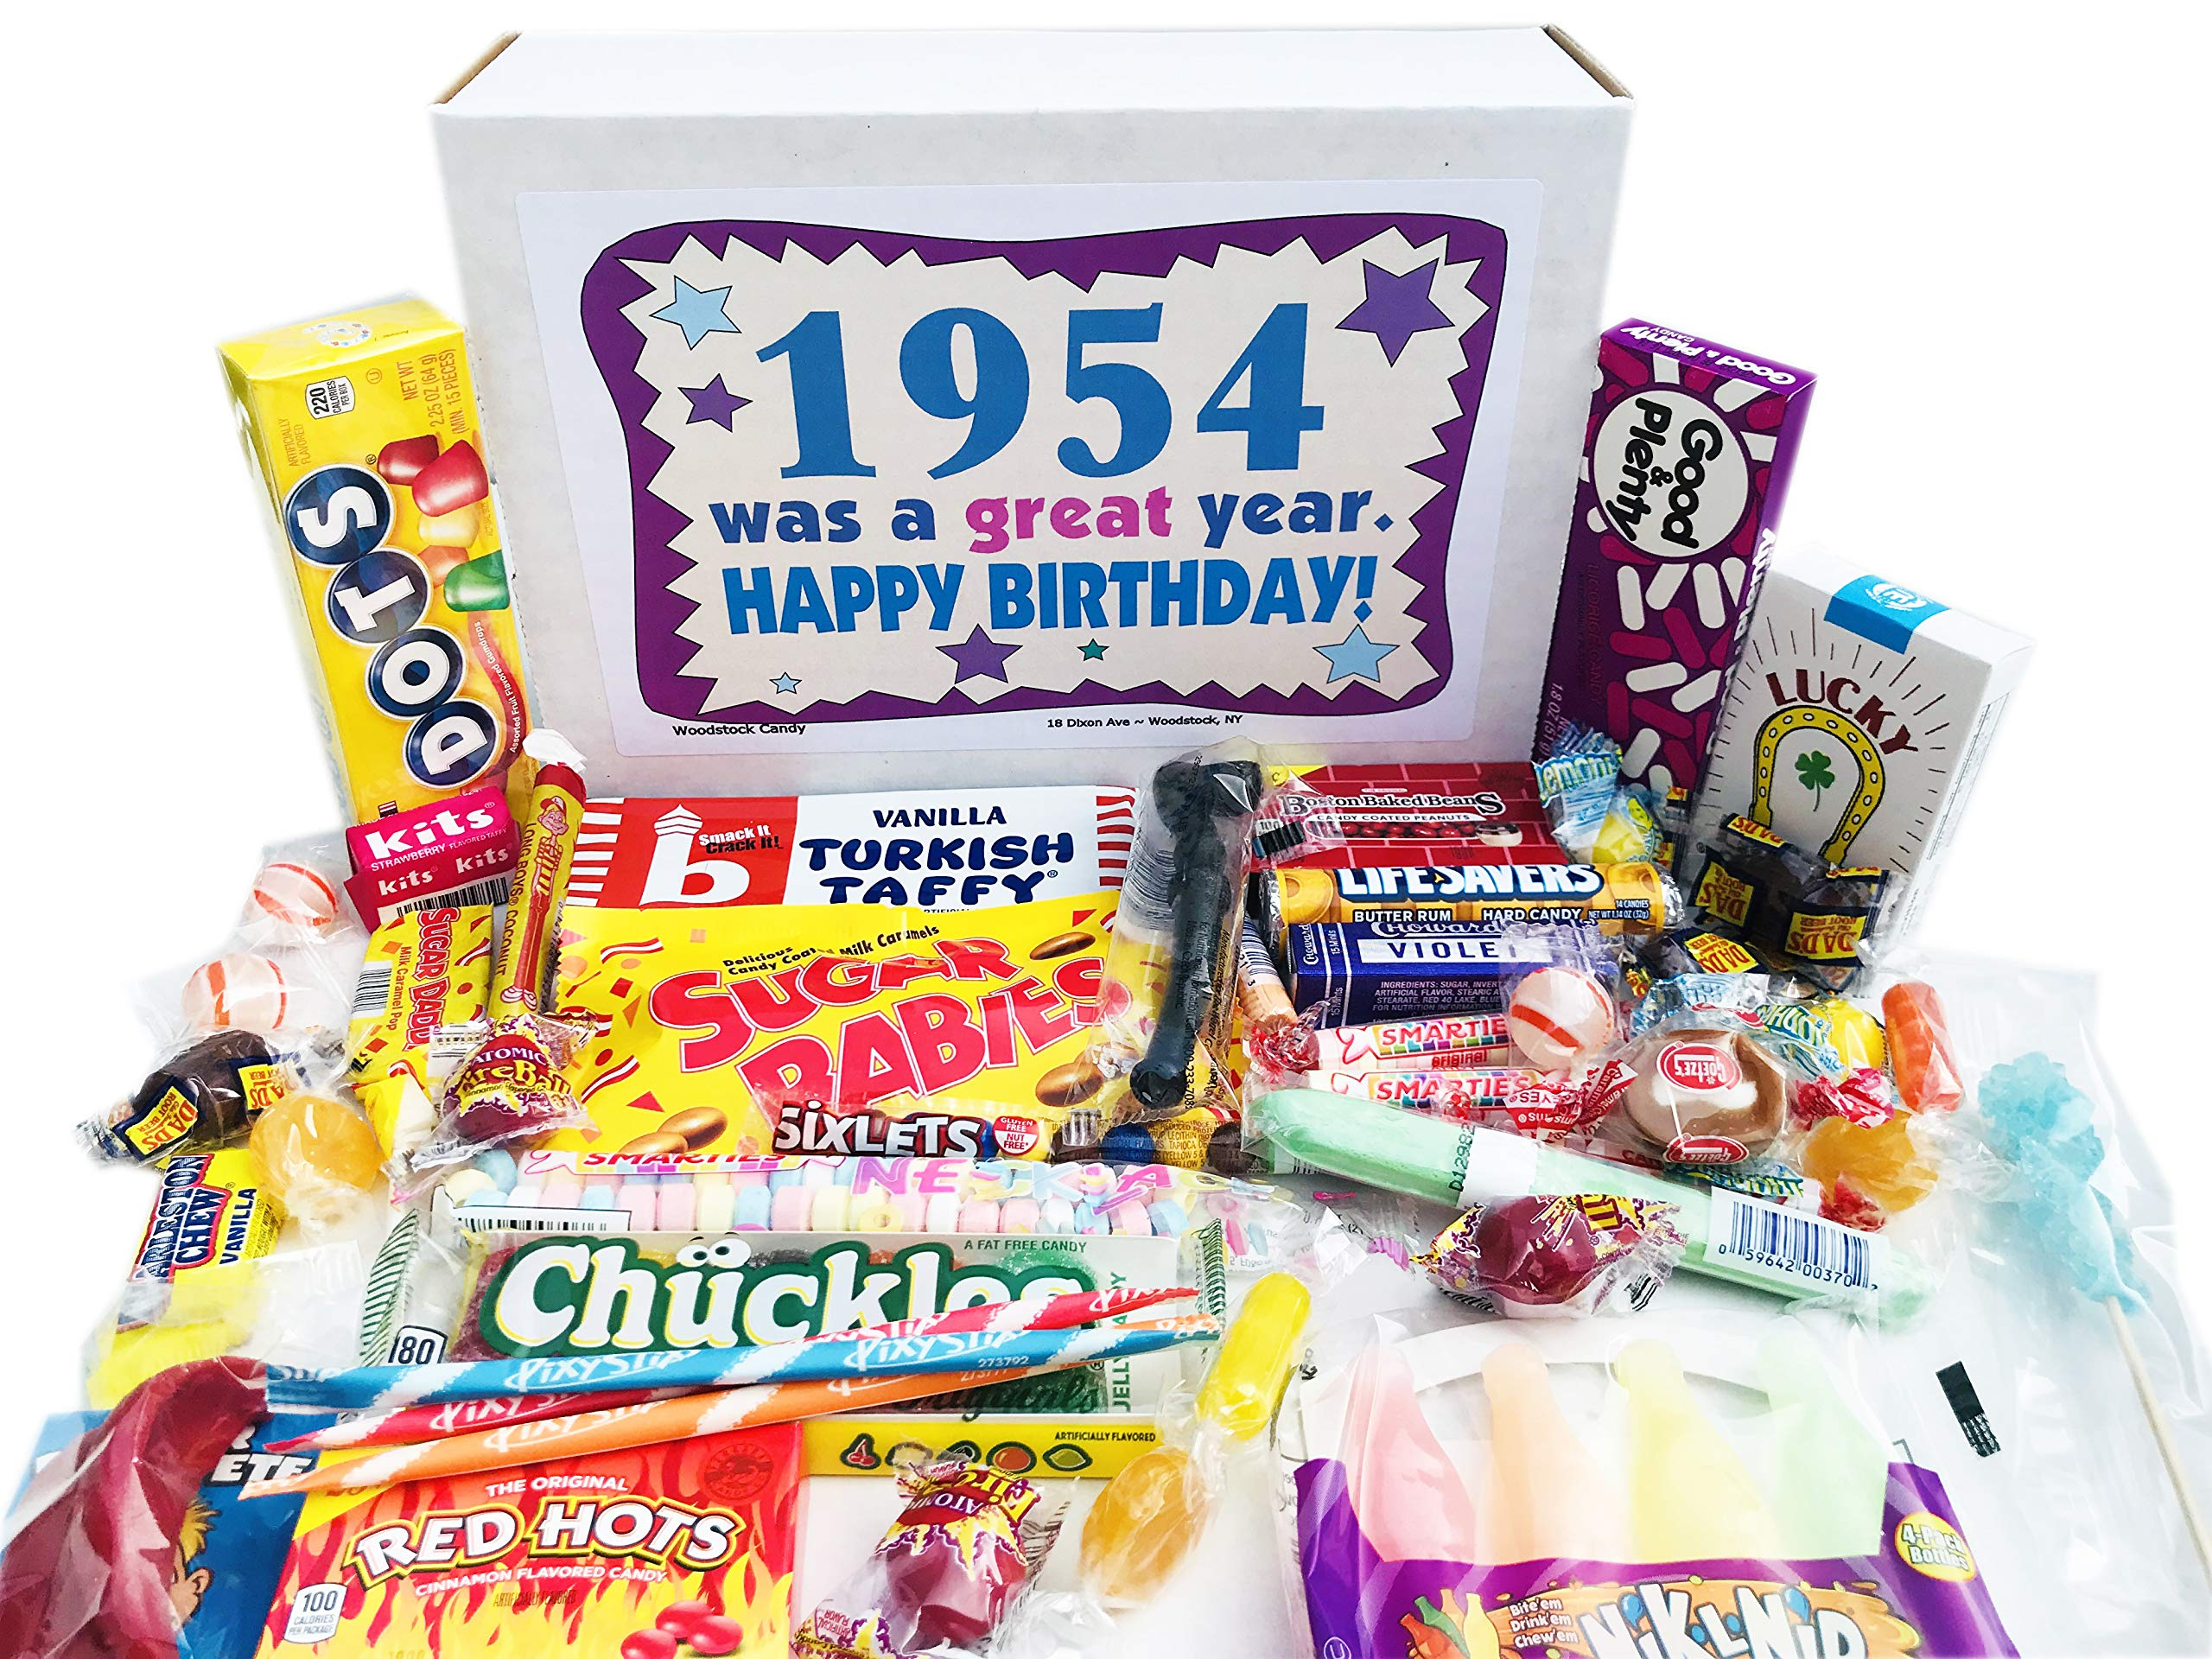 Woodstock Candy ~ 1954 65th Birthday Gift Box of Retro Vintage Candy Assortment from Childhood for 65 Year Old Man or Woman Born 1954 Jr by Woodstock Candy